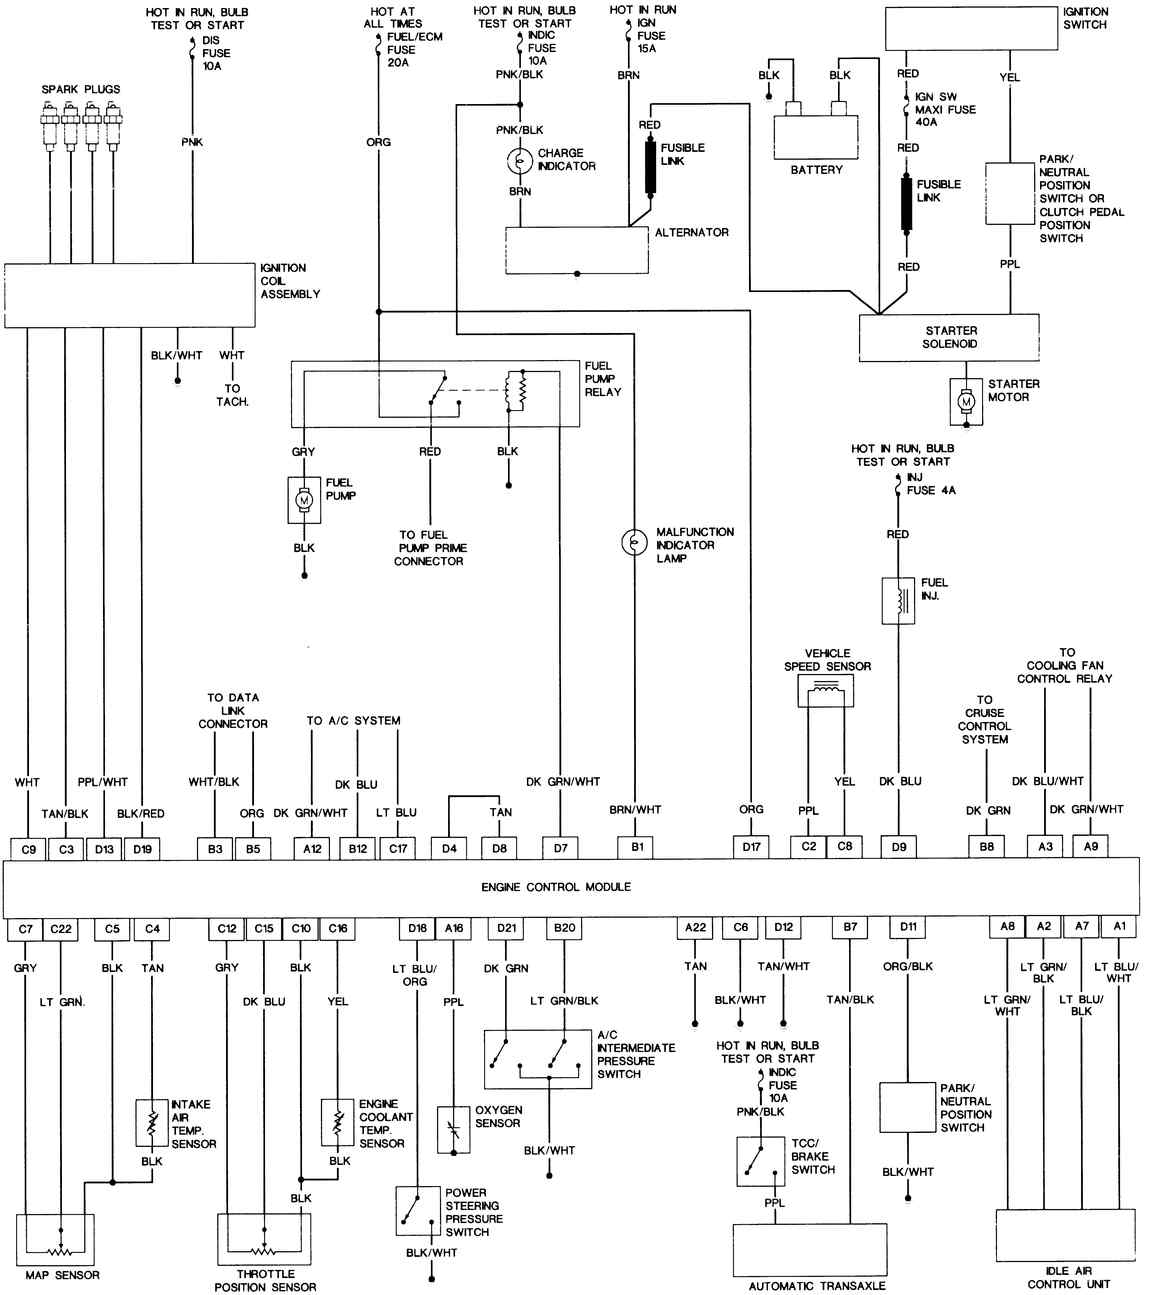 honda d17 ignition coil wiring diagram on 1982 chevy truck ignition wiring  diagram,